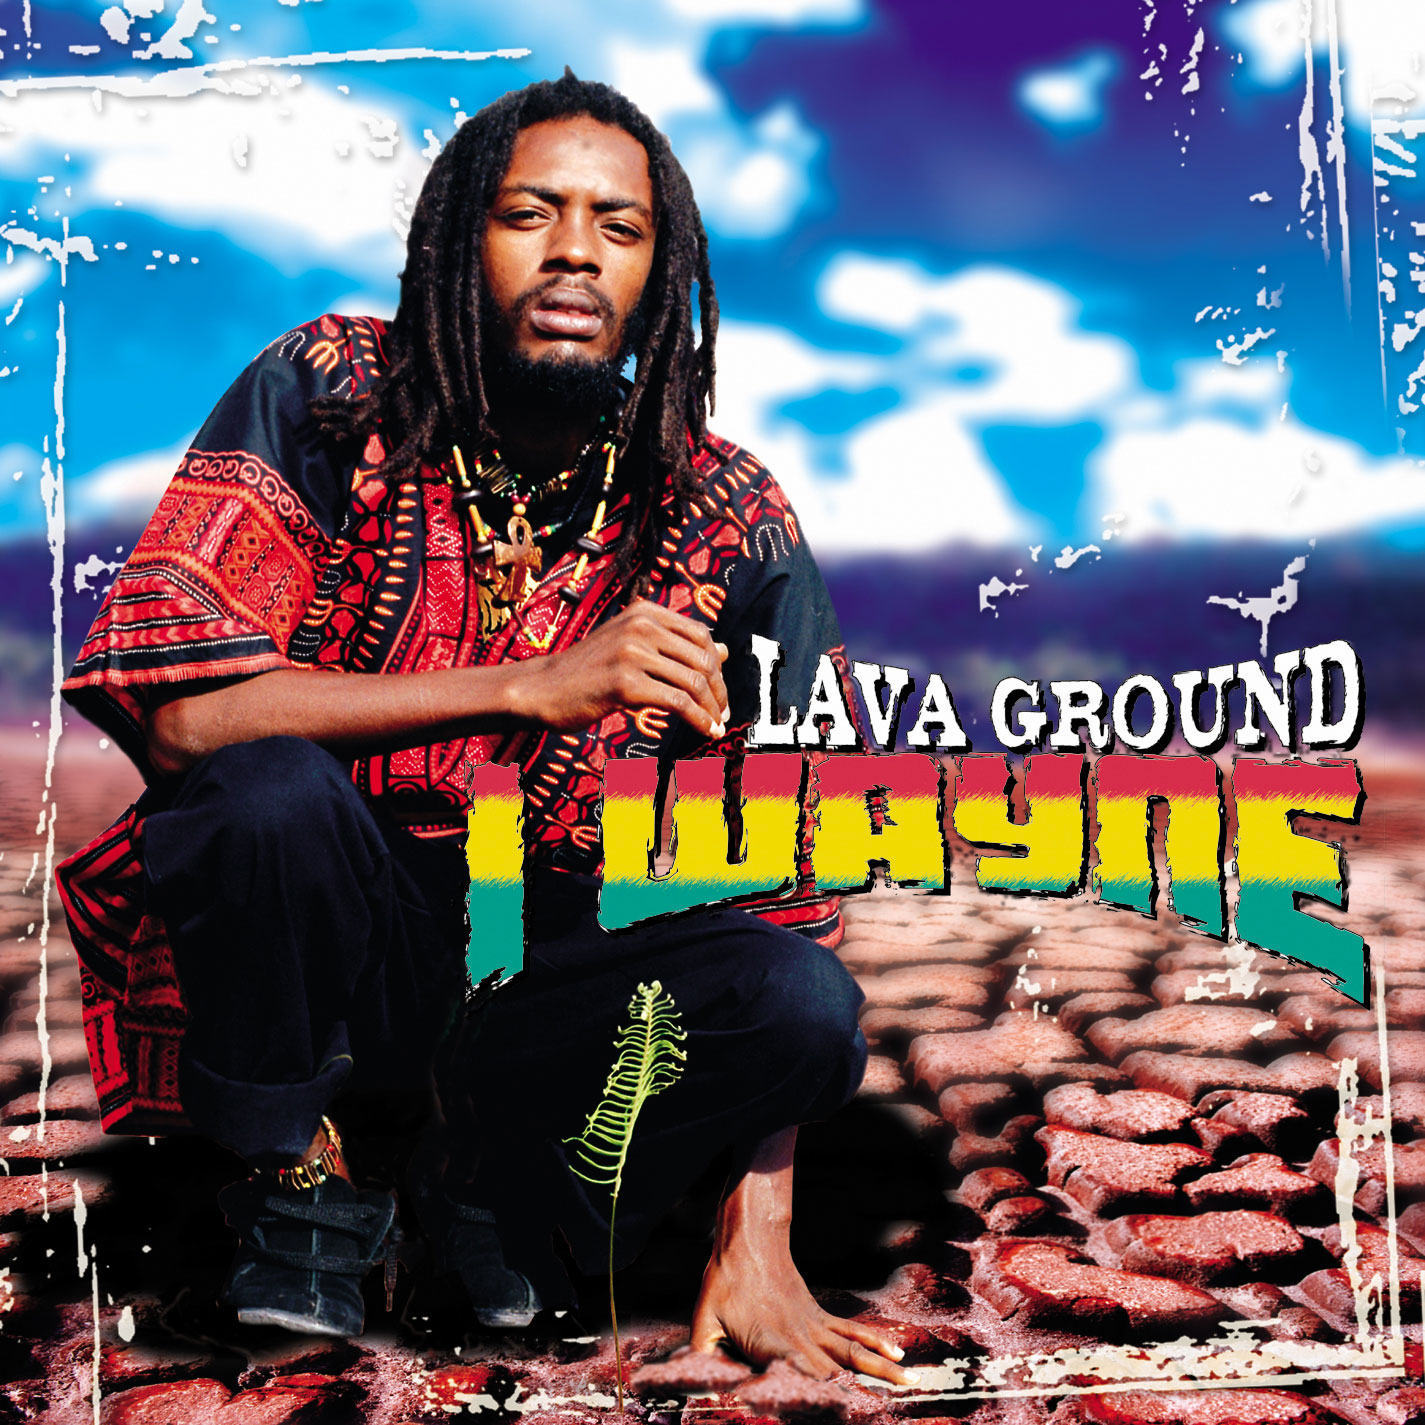 I Wayne – Lava Ground